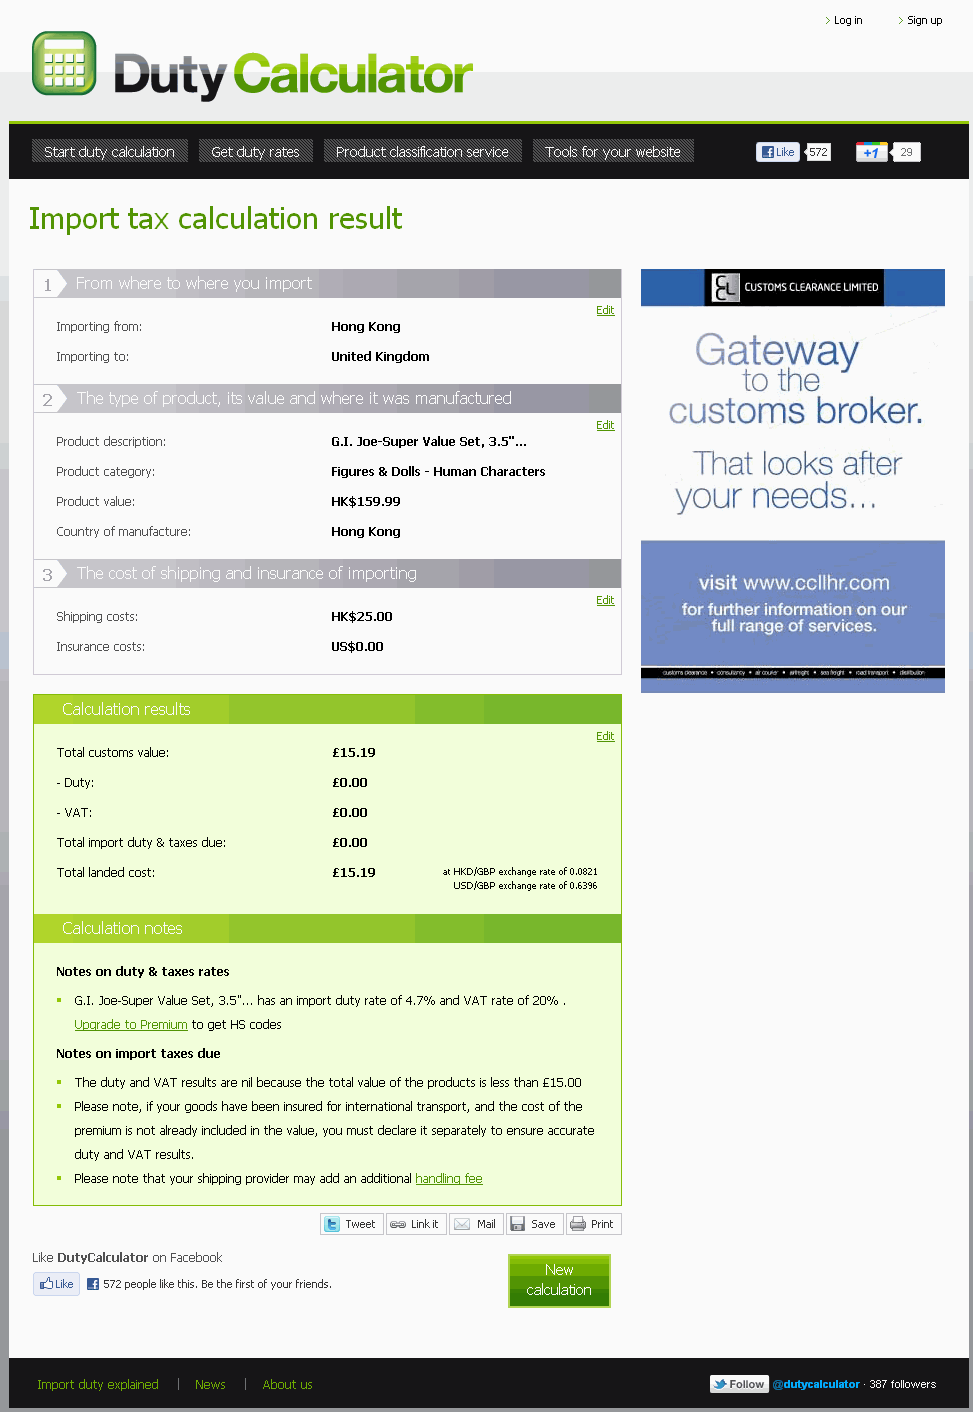 eBay Import duty calculator